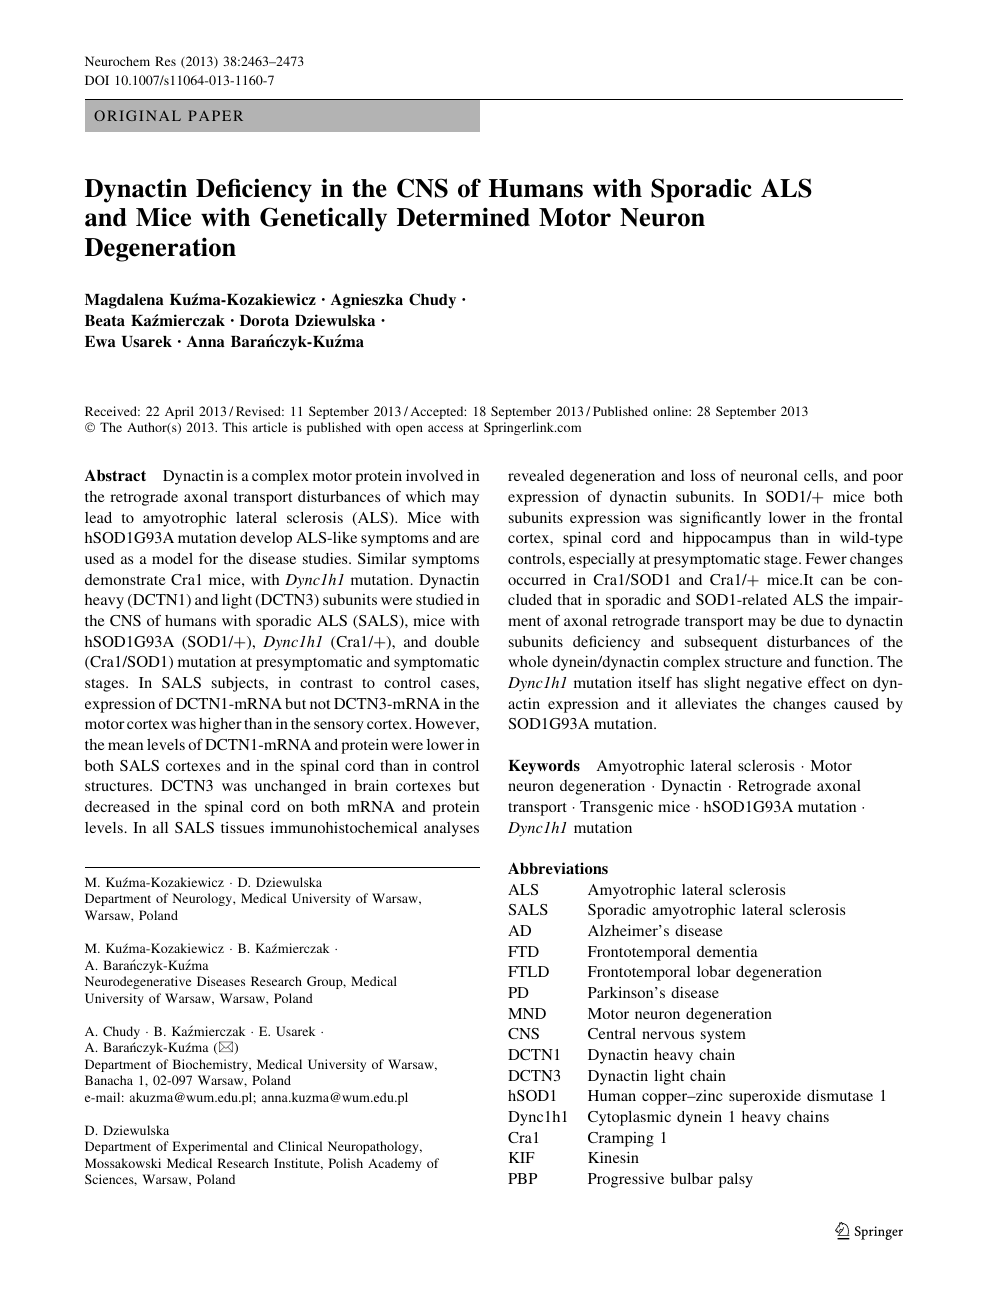 Dynactin Deficiency in the CNS of Humans with Sporadic ALS and Mice